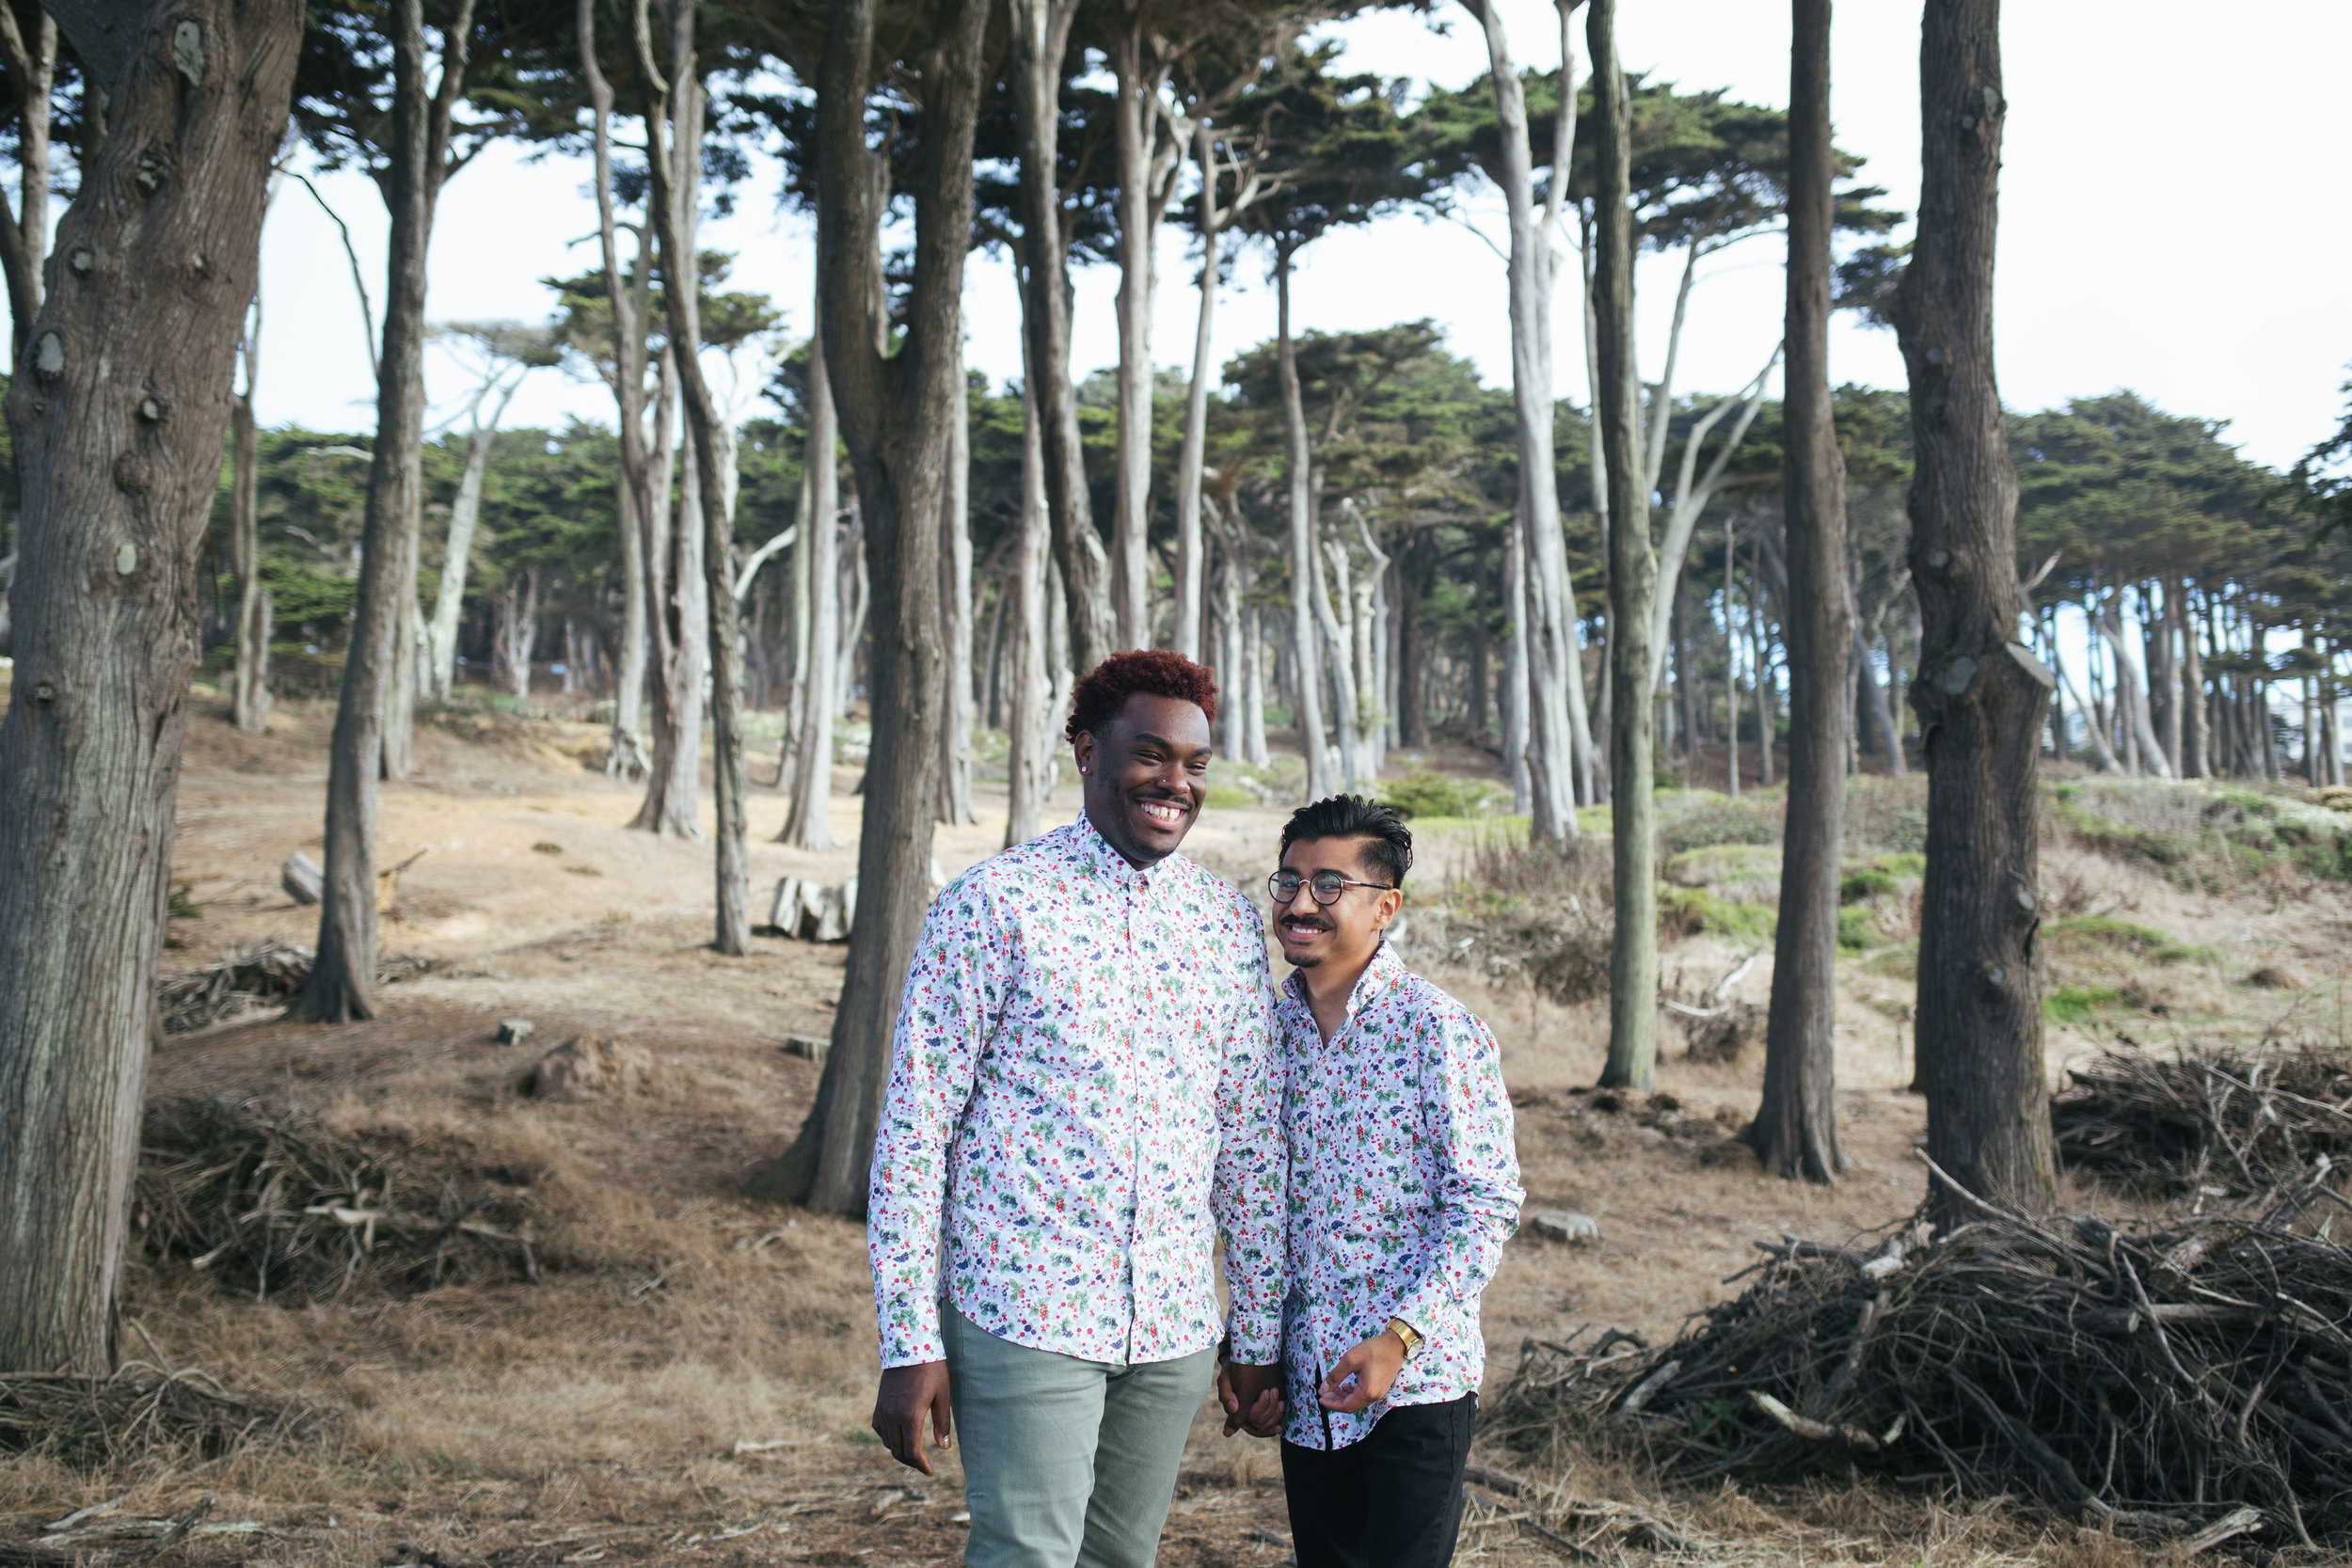 Sutro Baths Engagement Shoot / San Francisco Engagement Photographer - Trueman and Manolo